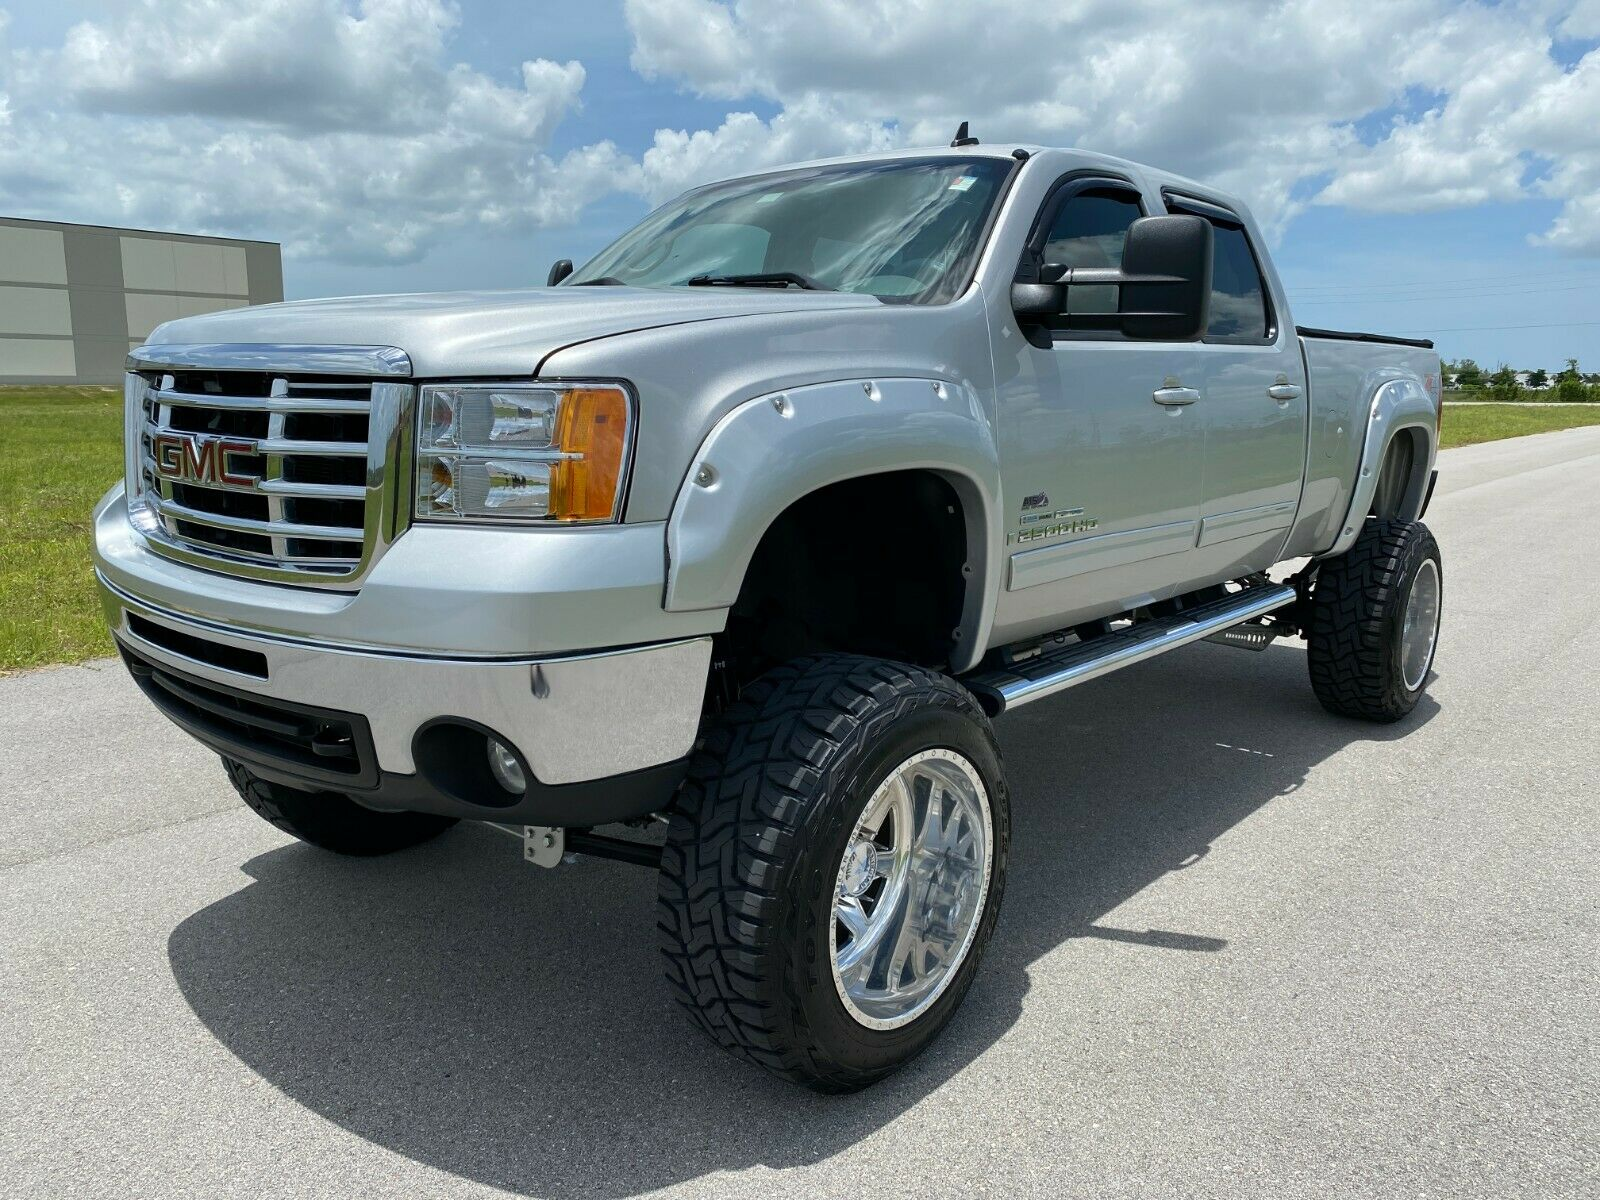 stunning 2008 GMC Sierra 2500 lifted for sale